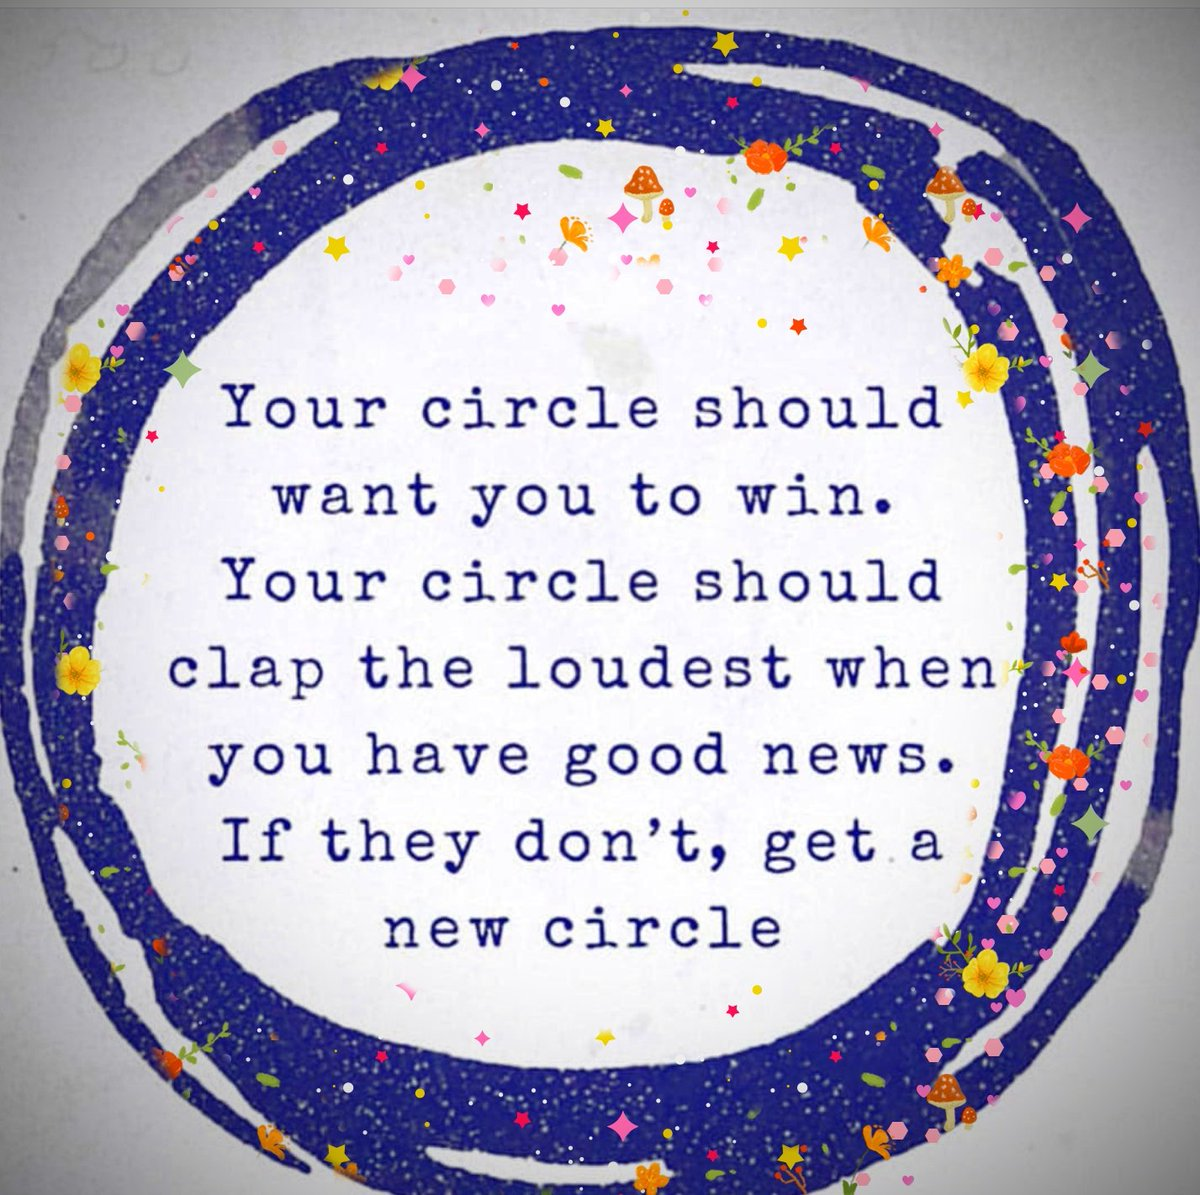 Your circle should want you to Win....#MondayMotivaton #entrepreneur #StartUp #Success #motivation #inspiration #Quote<br>http://pic.twitter.com/5V3lZC2abO